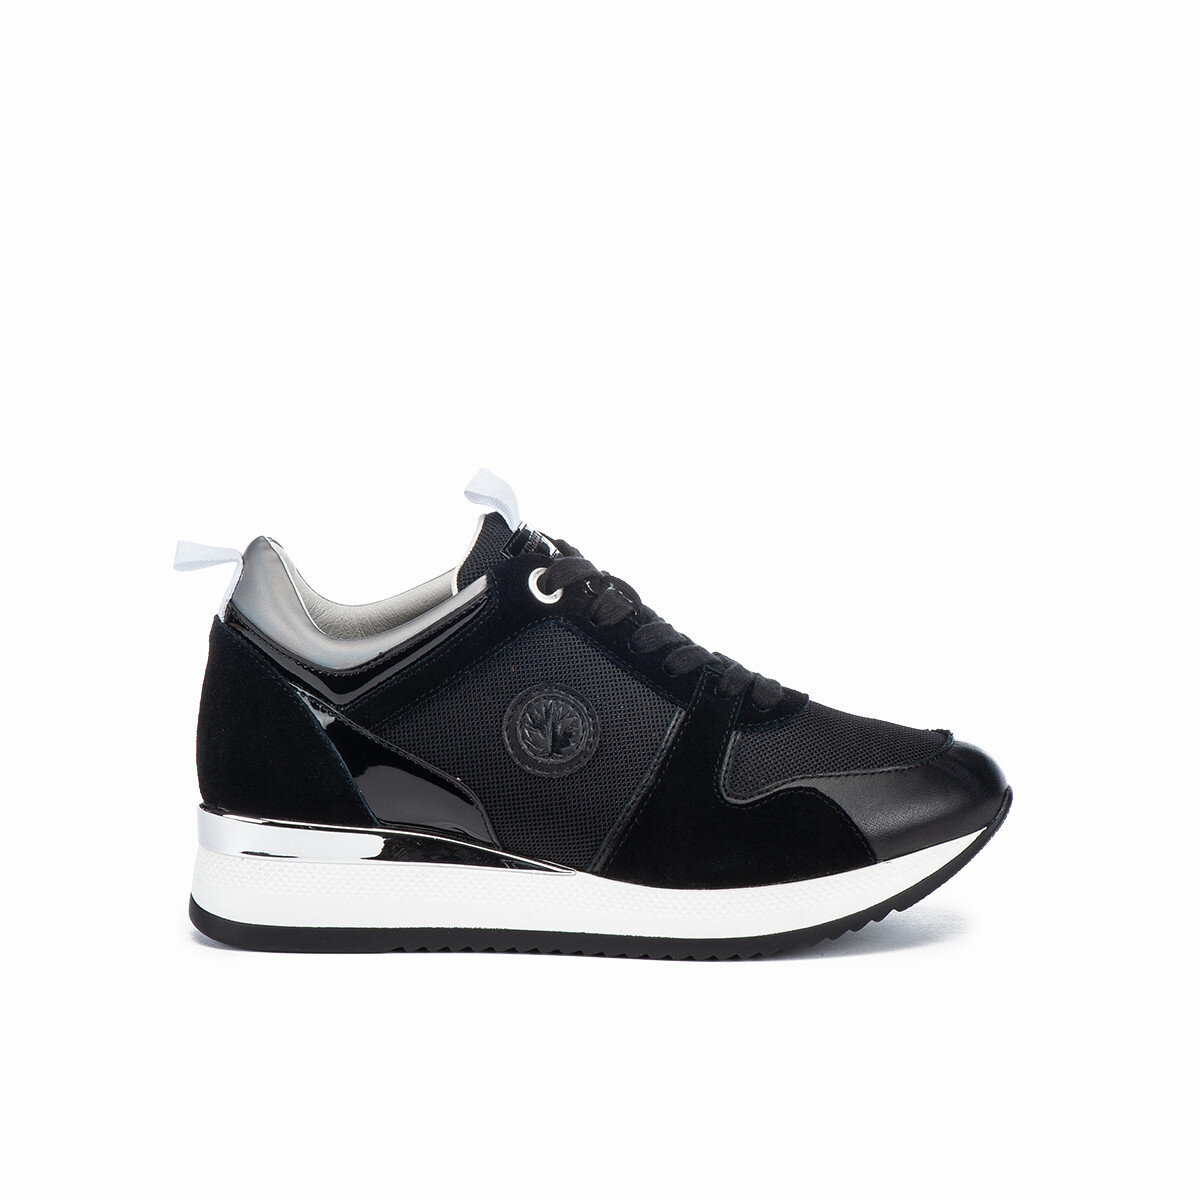 KANDY Sneakers Donna